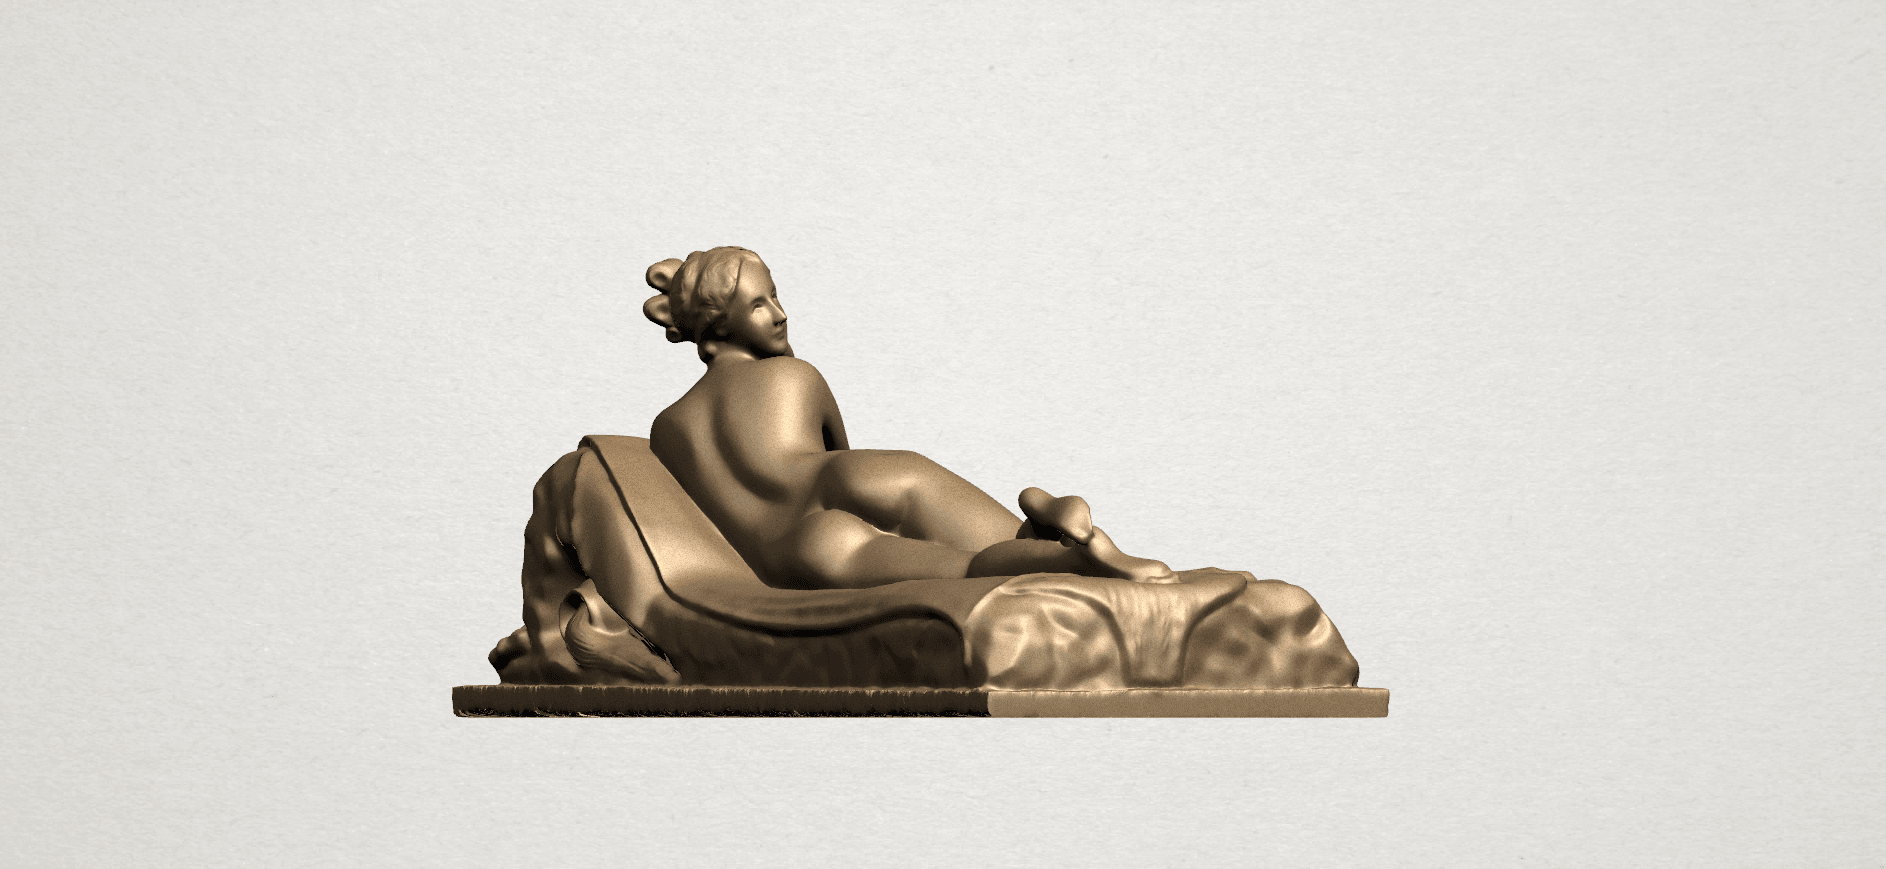 Lying on Bed (i) A04.png Download free STL file Naked Girl - Lying on Bed 01 • 3D printable object, GeorgesNikkei